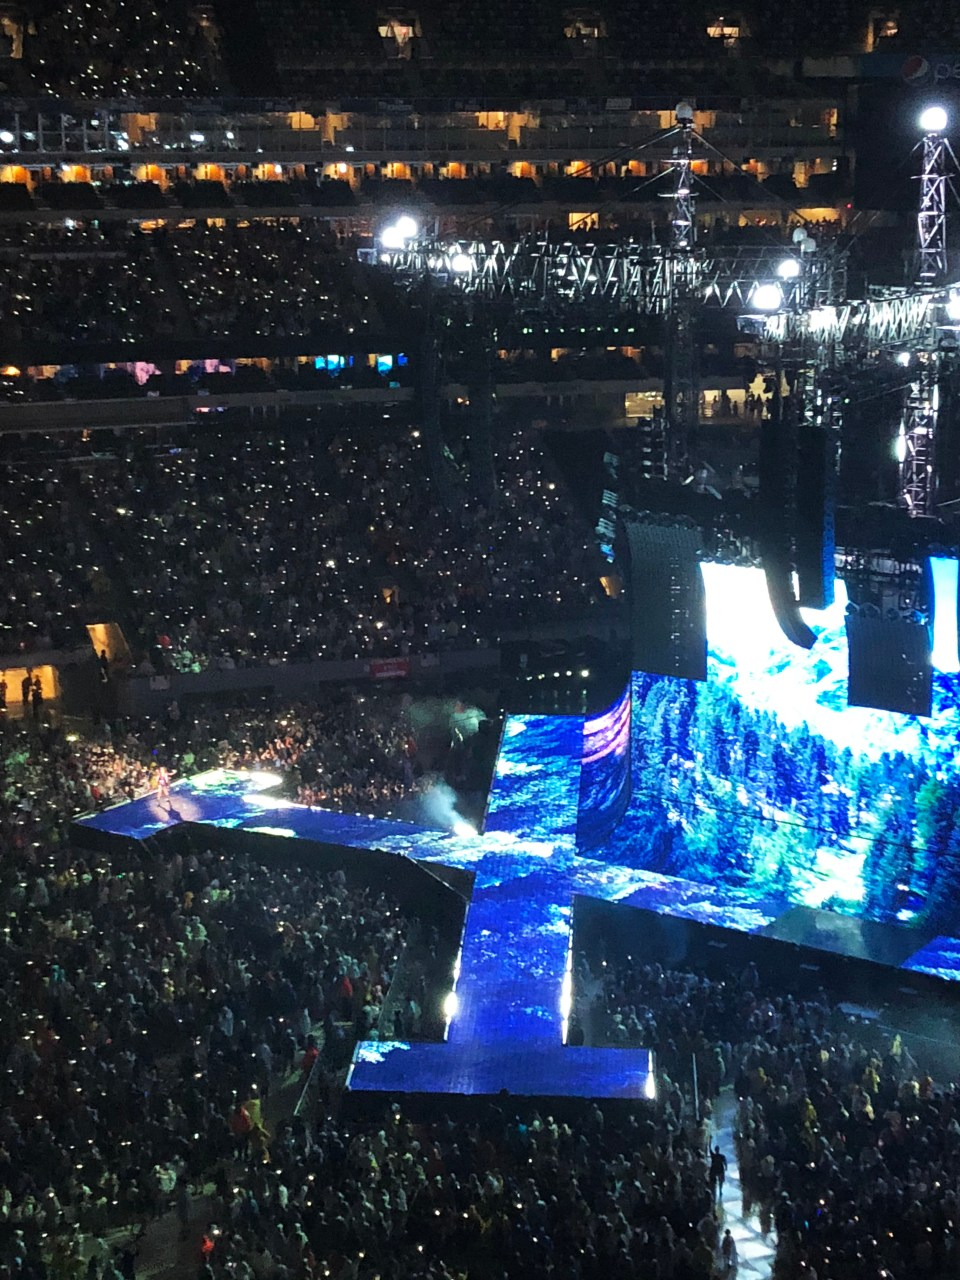 Taylor Swift Reputation Tour - East Rutherford